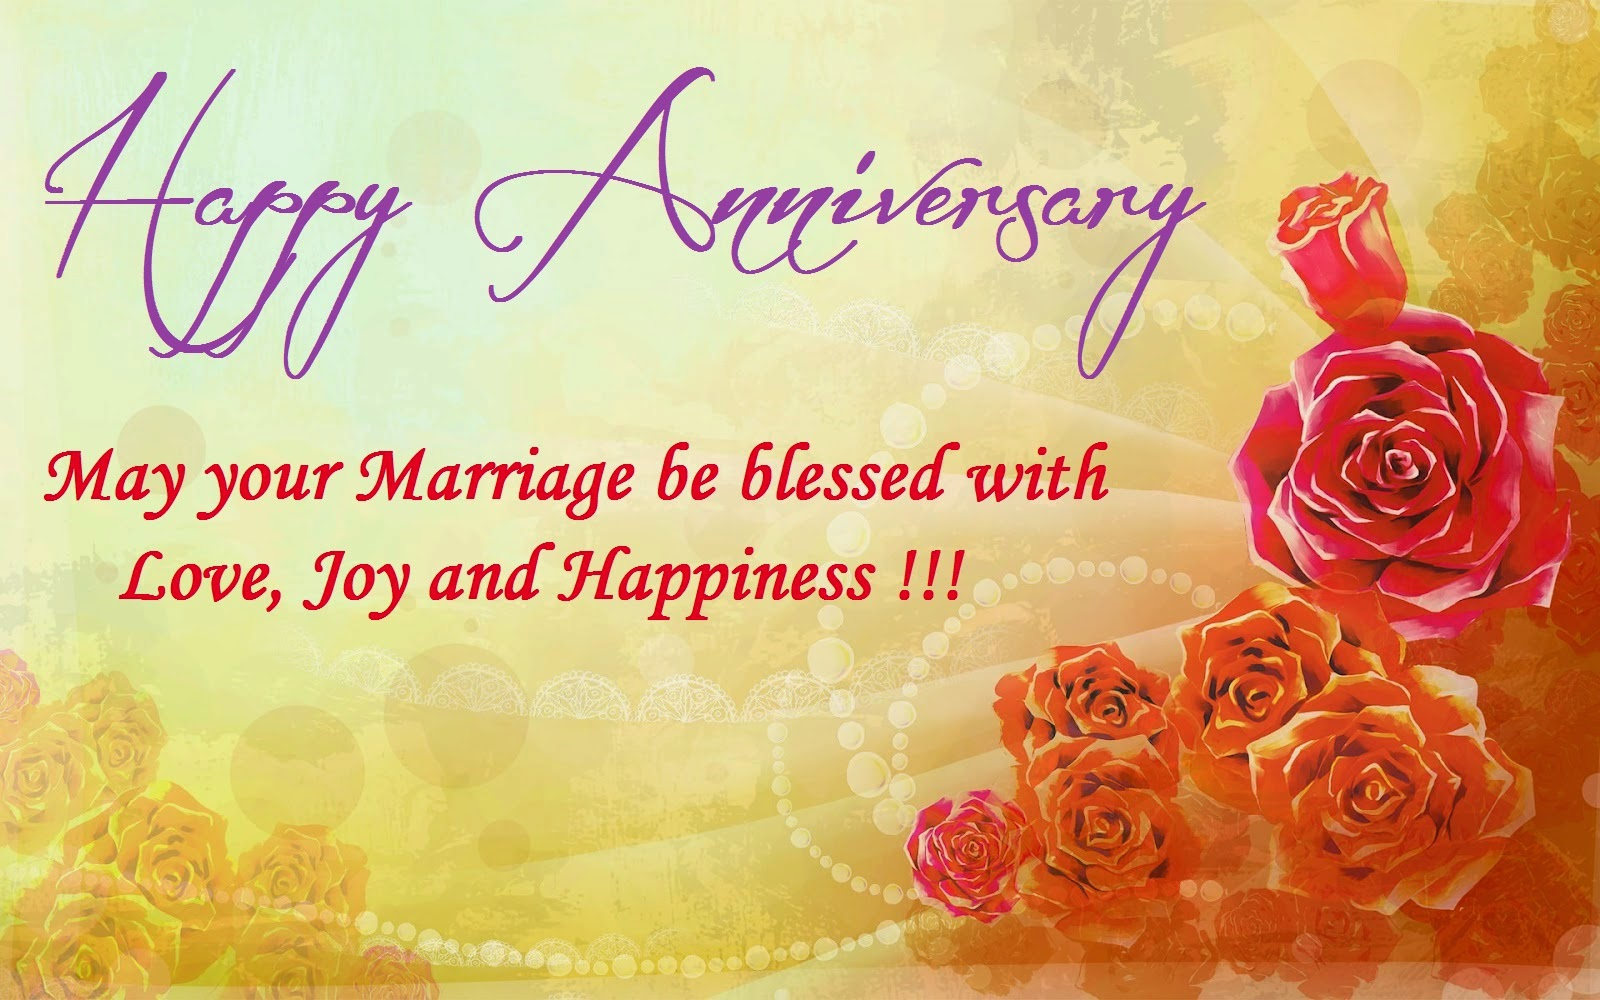 Top 50 Beautiful Happy Wedding Anniversary Wishes Images Photos Messages Quotes Gifts For ...